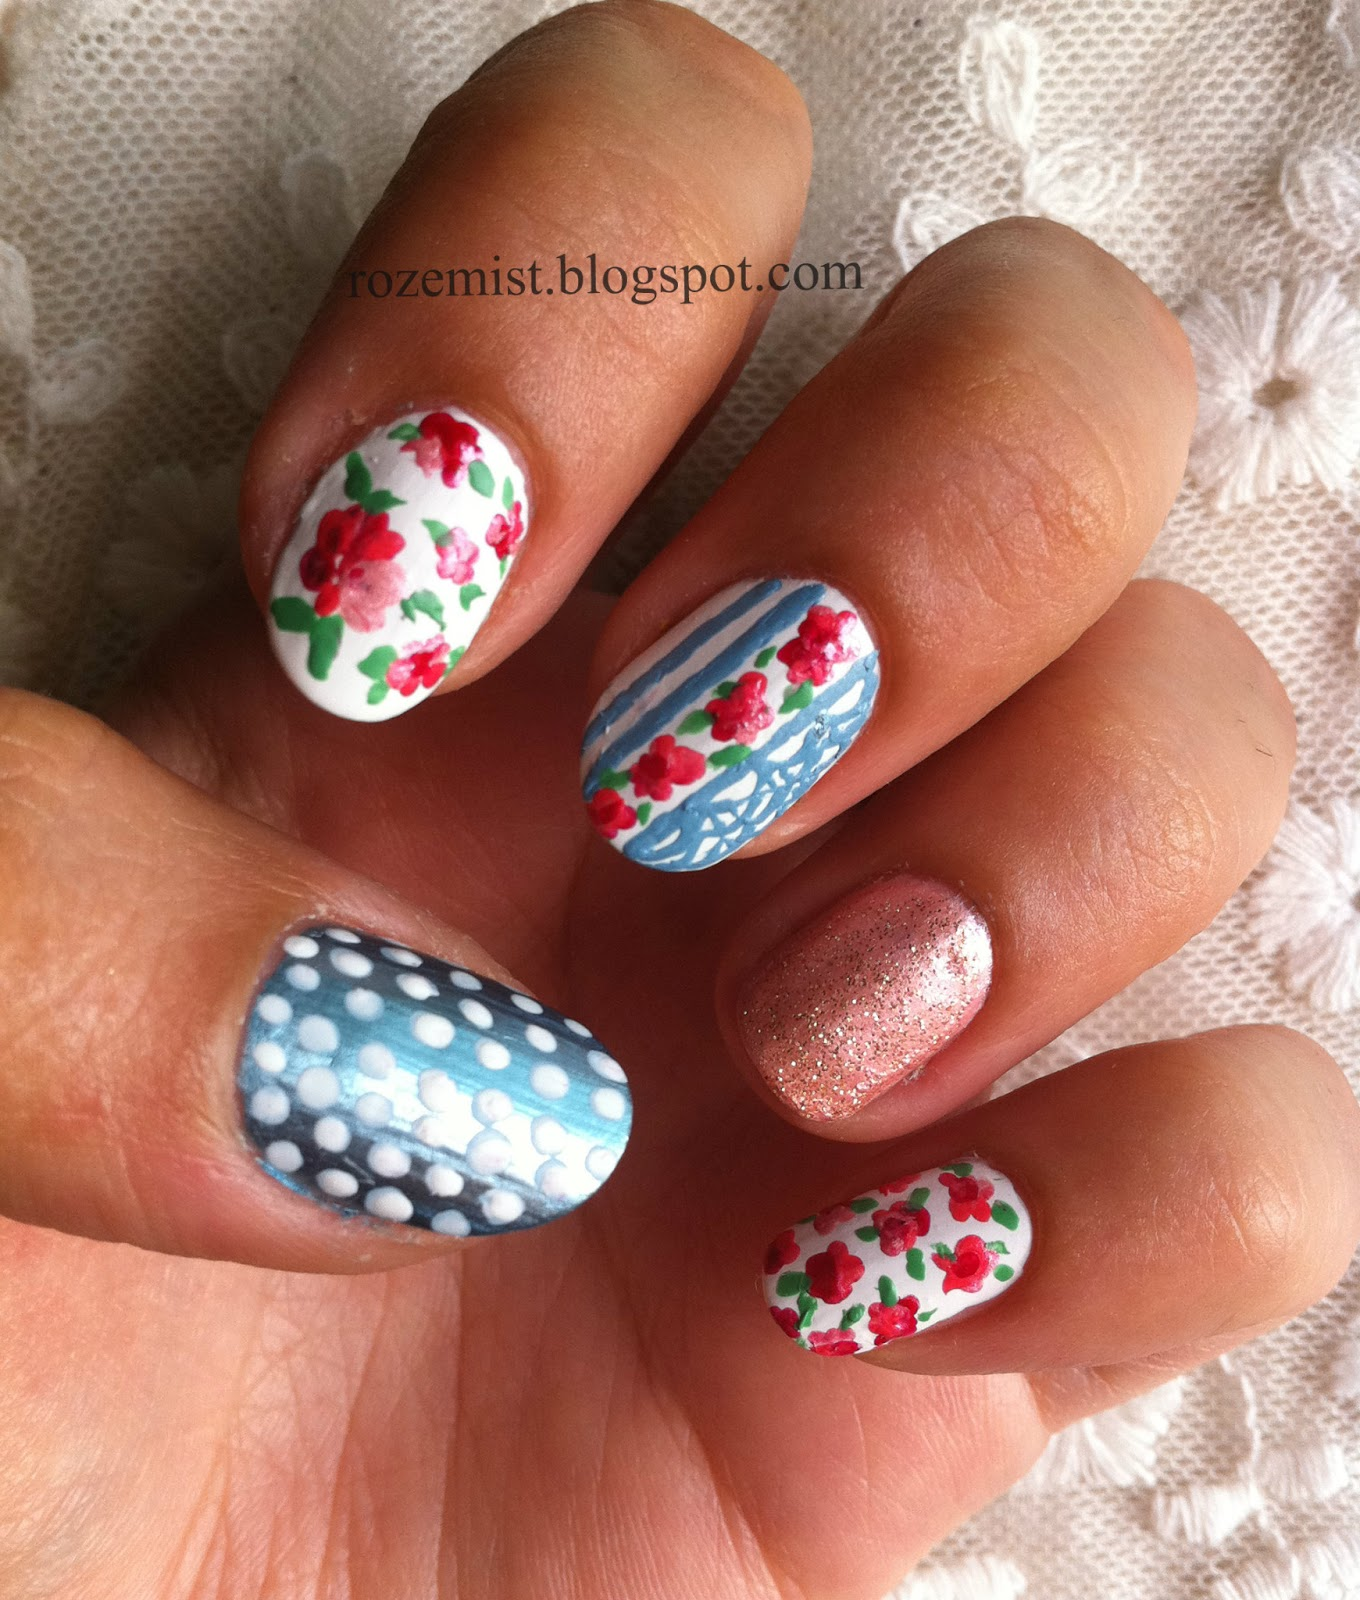 Vintage floral nail designs nails gallery vintage floral nail designs pictures prinsesfo Image collections